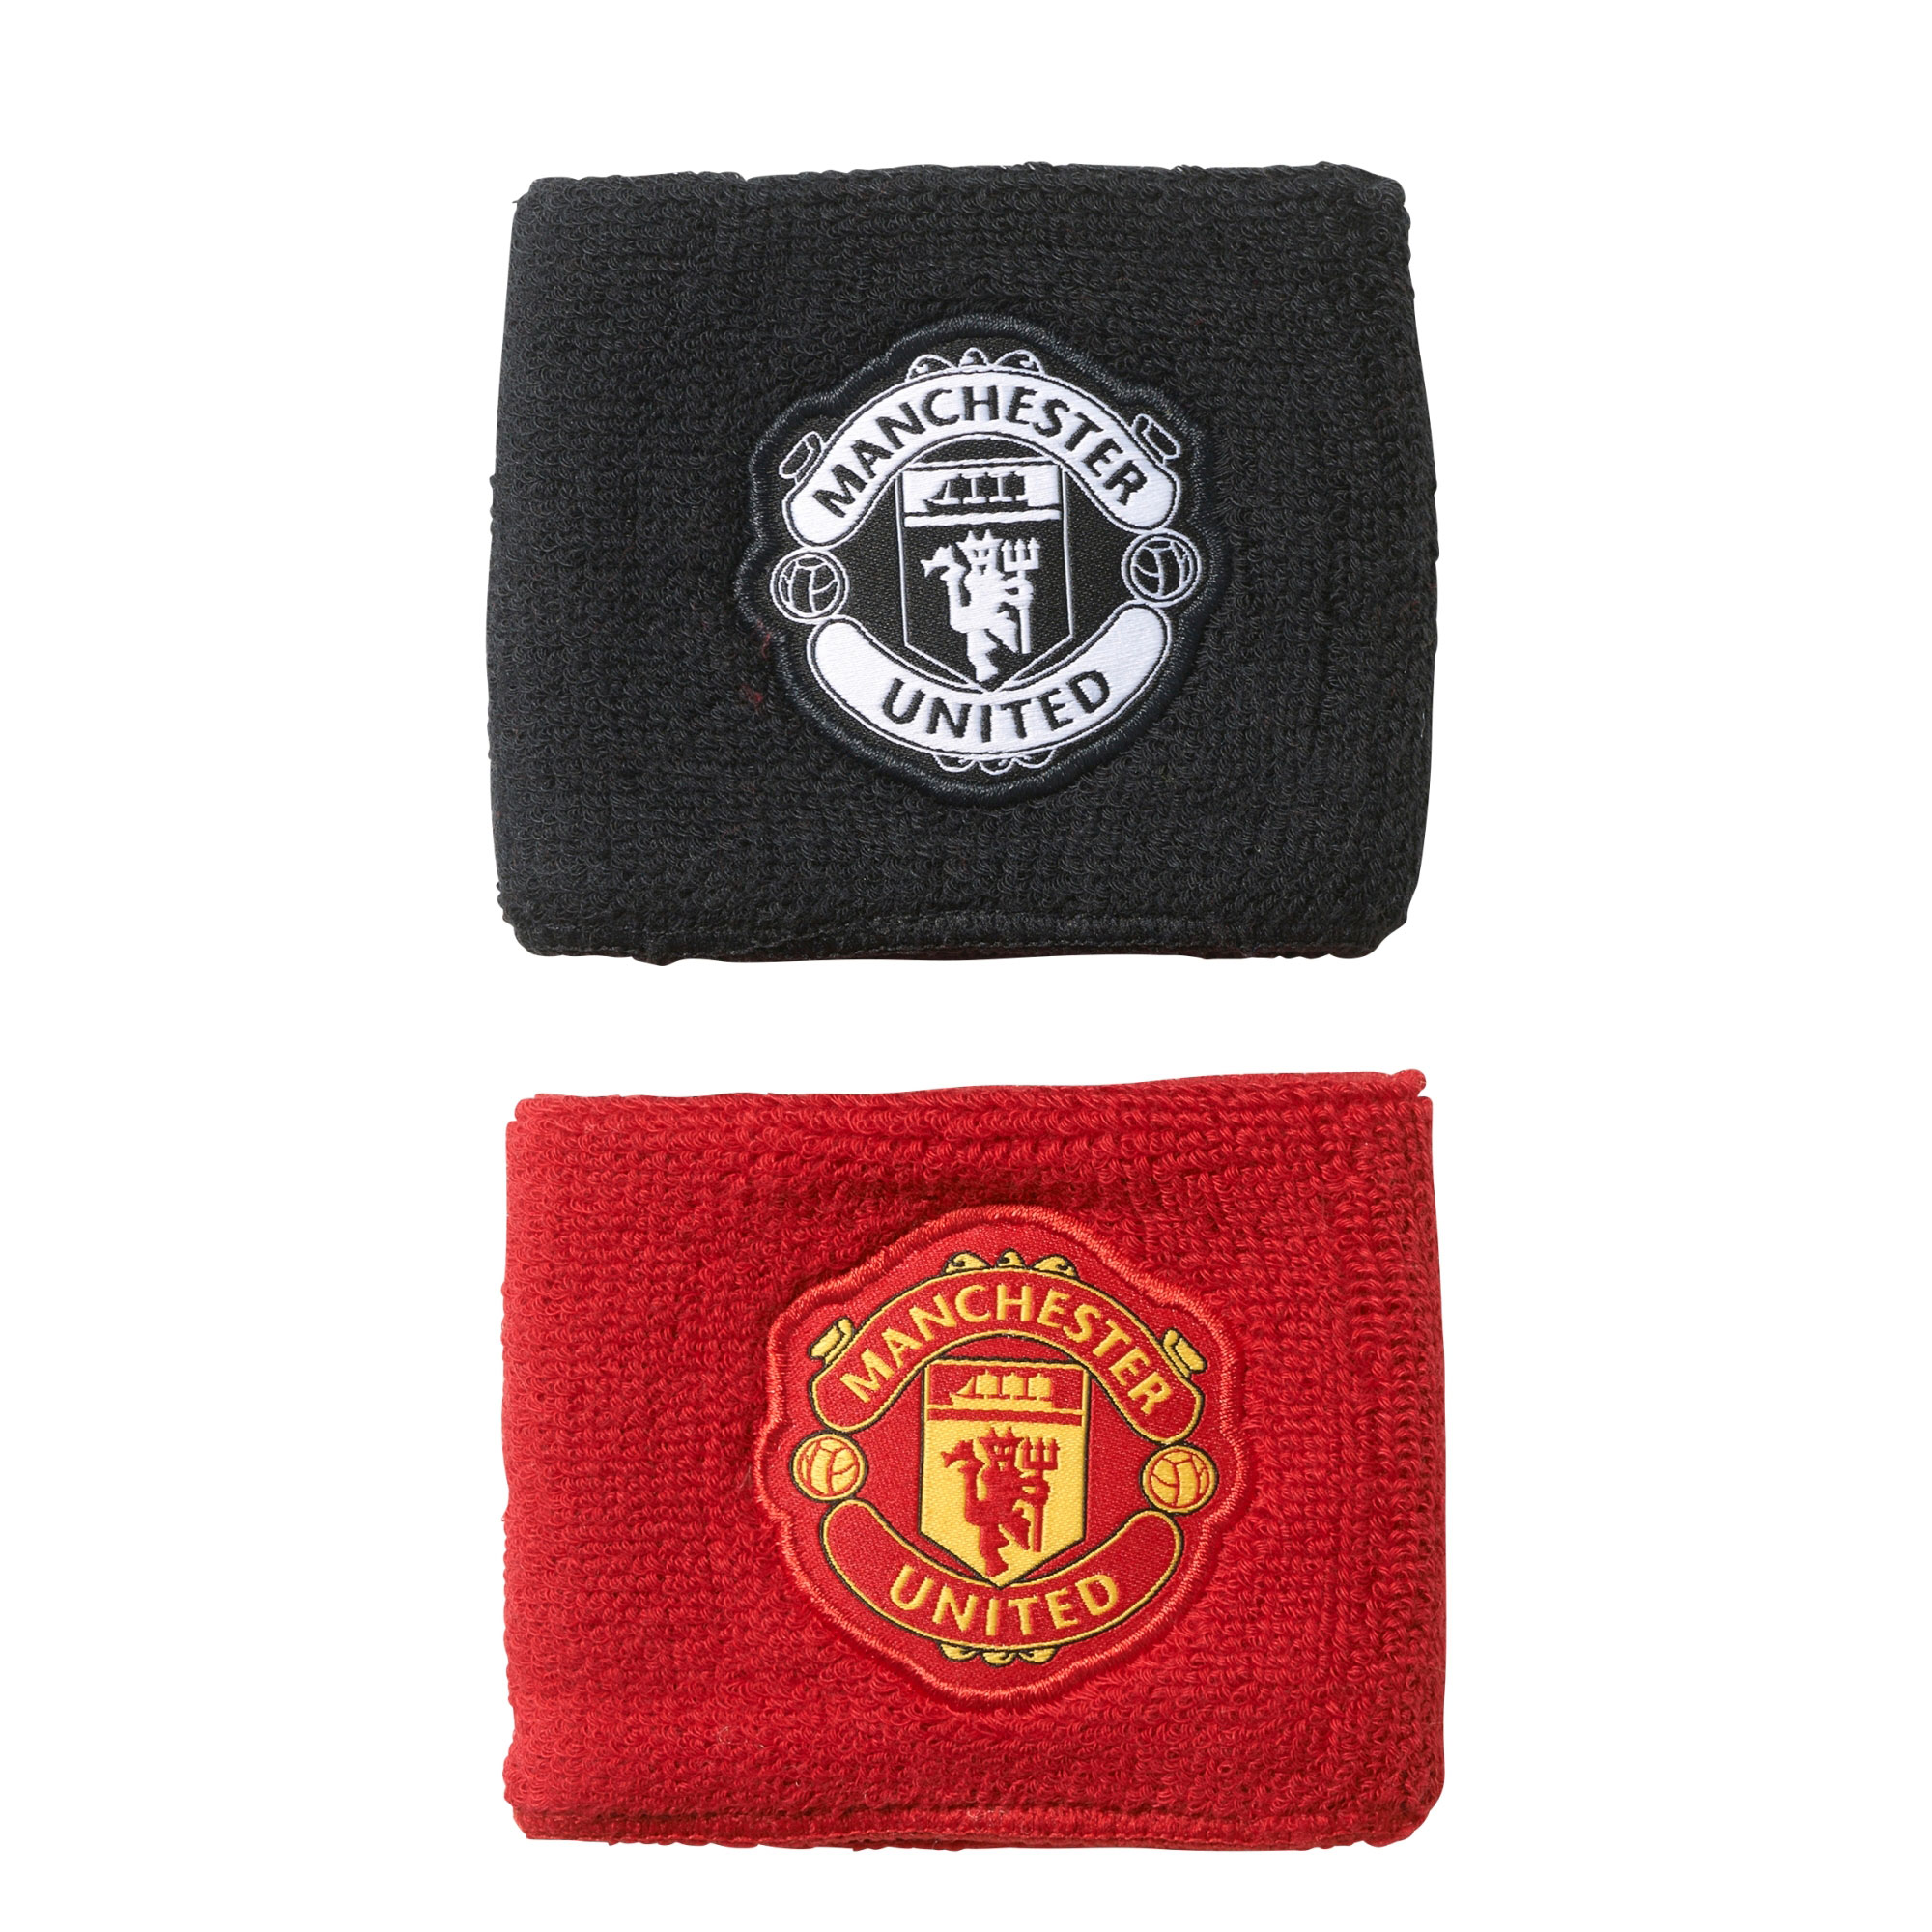 Manchester United Wristbands - Red - Black